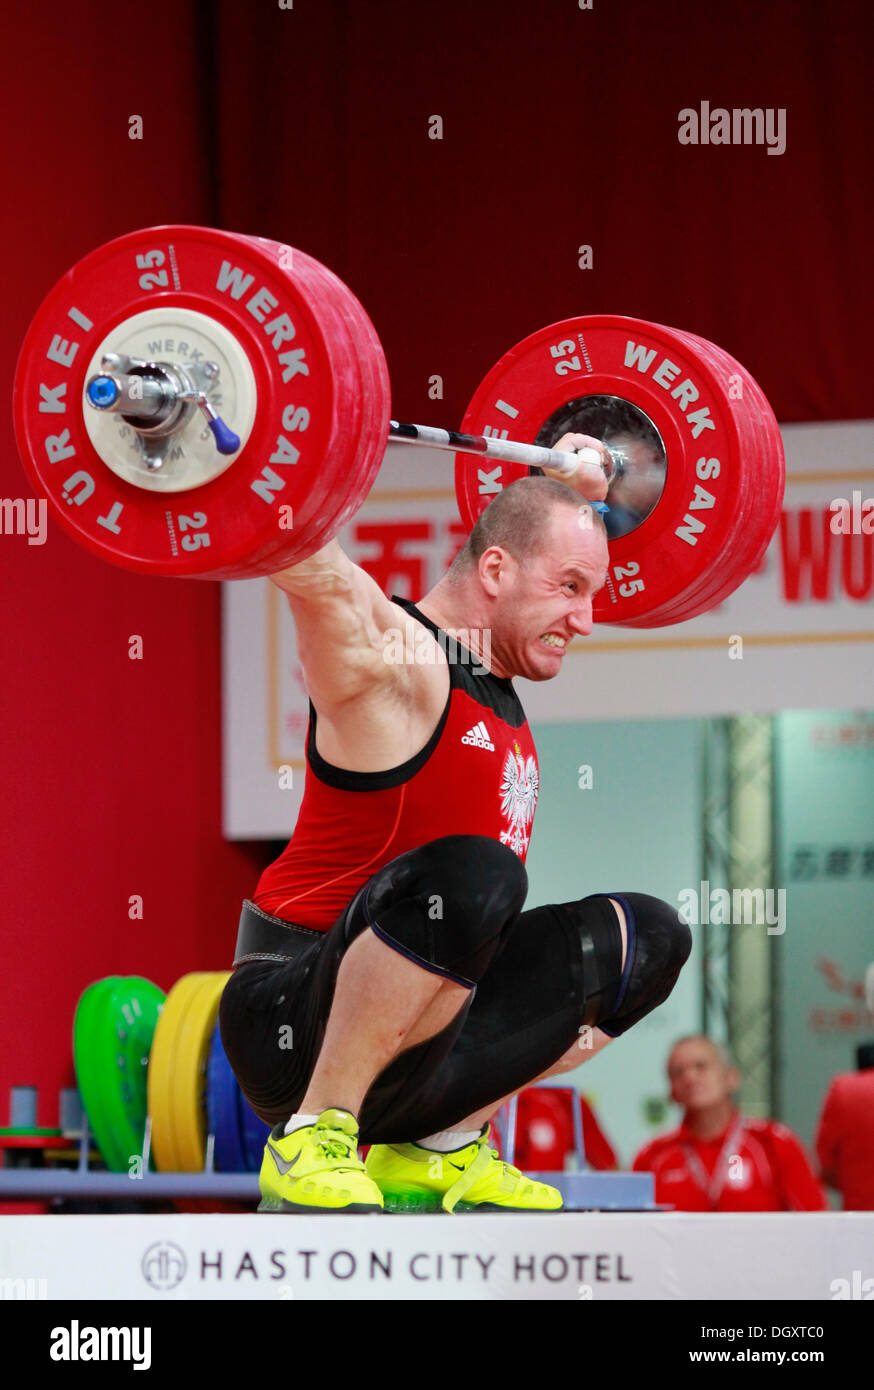 Wroclaw, Poland. 27th Oct, 2013. Marcin Dolega (POL) during Men's 105 KG Group A Final at 2013 IWF World Weightlifting Championships in Wroclaw, Poland, on Sunday, October 27, 2013. Credit:  Piotr Zajac/Alamy Live News - Stock Image